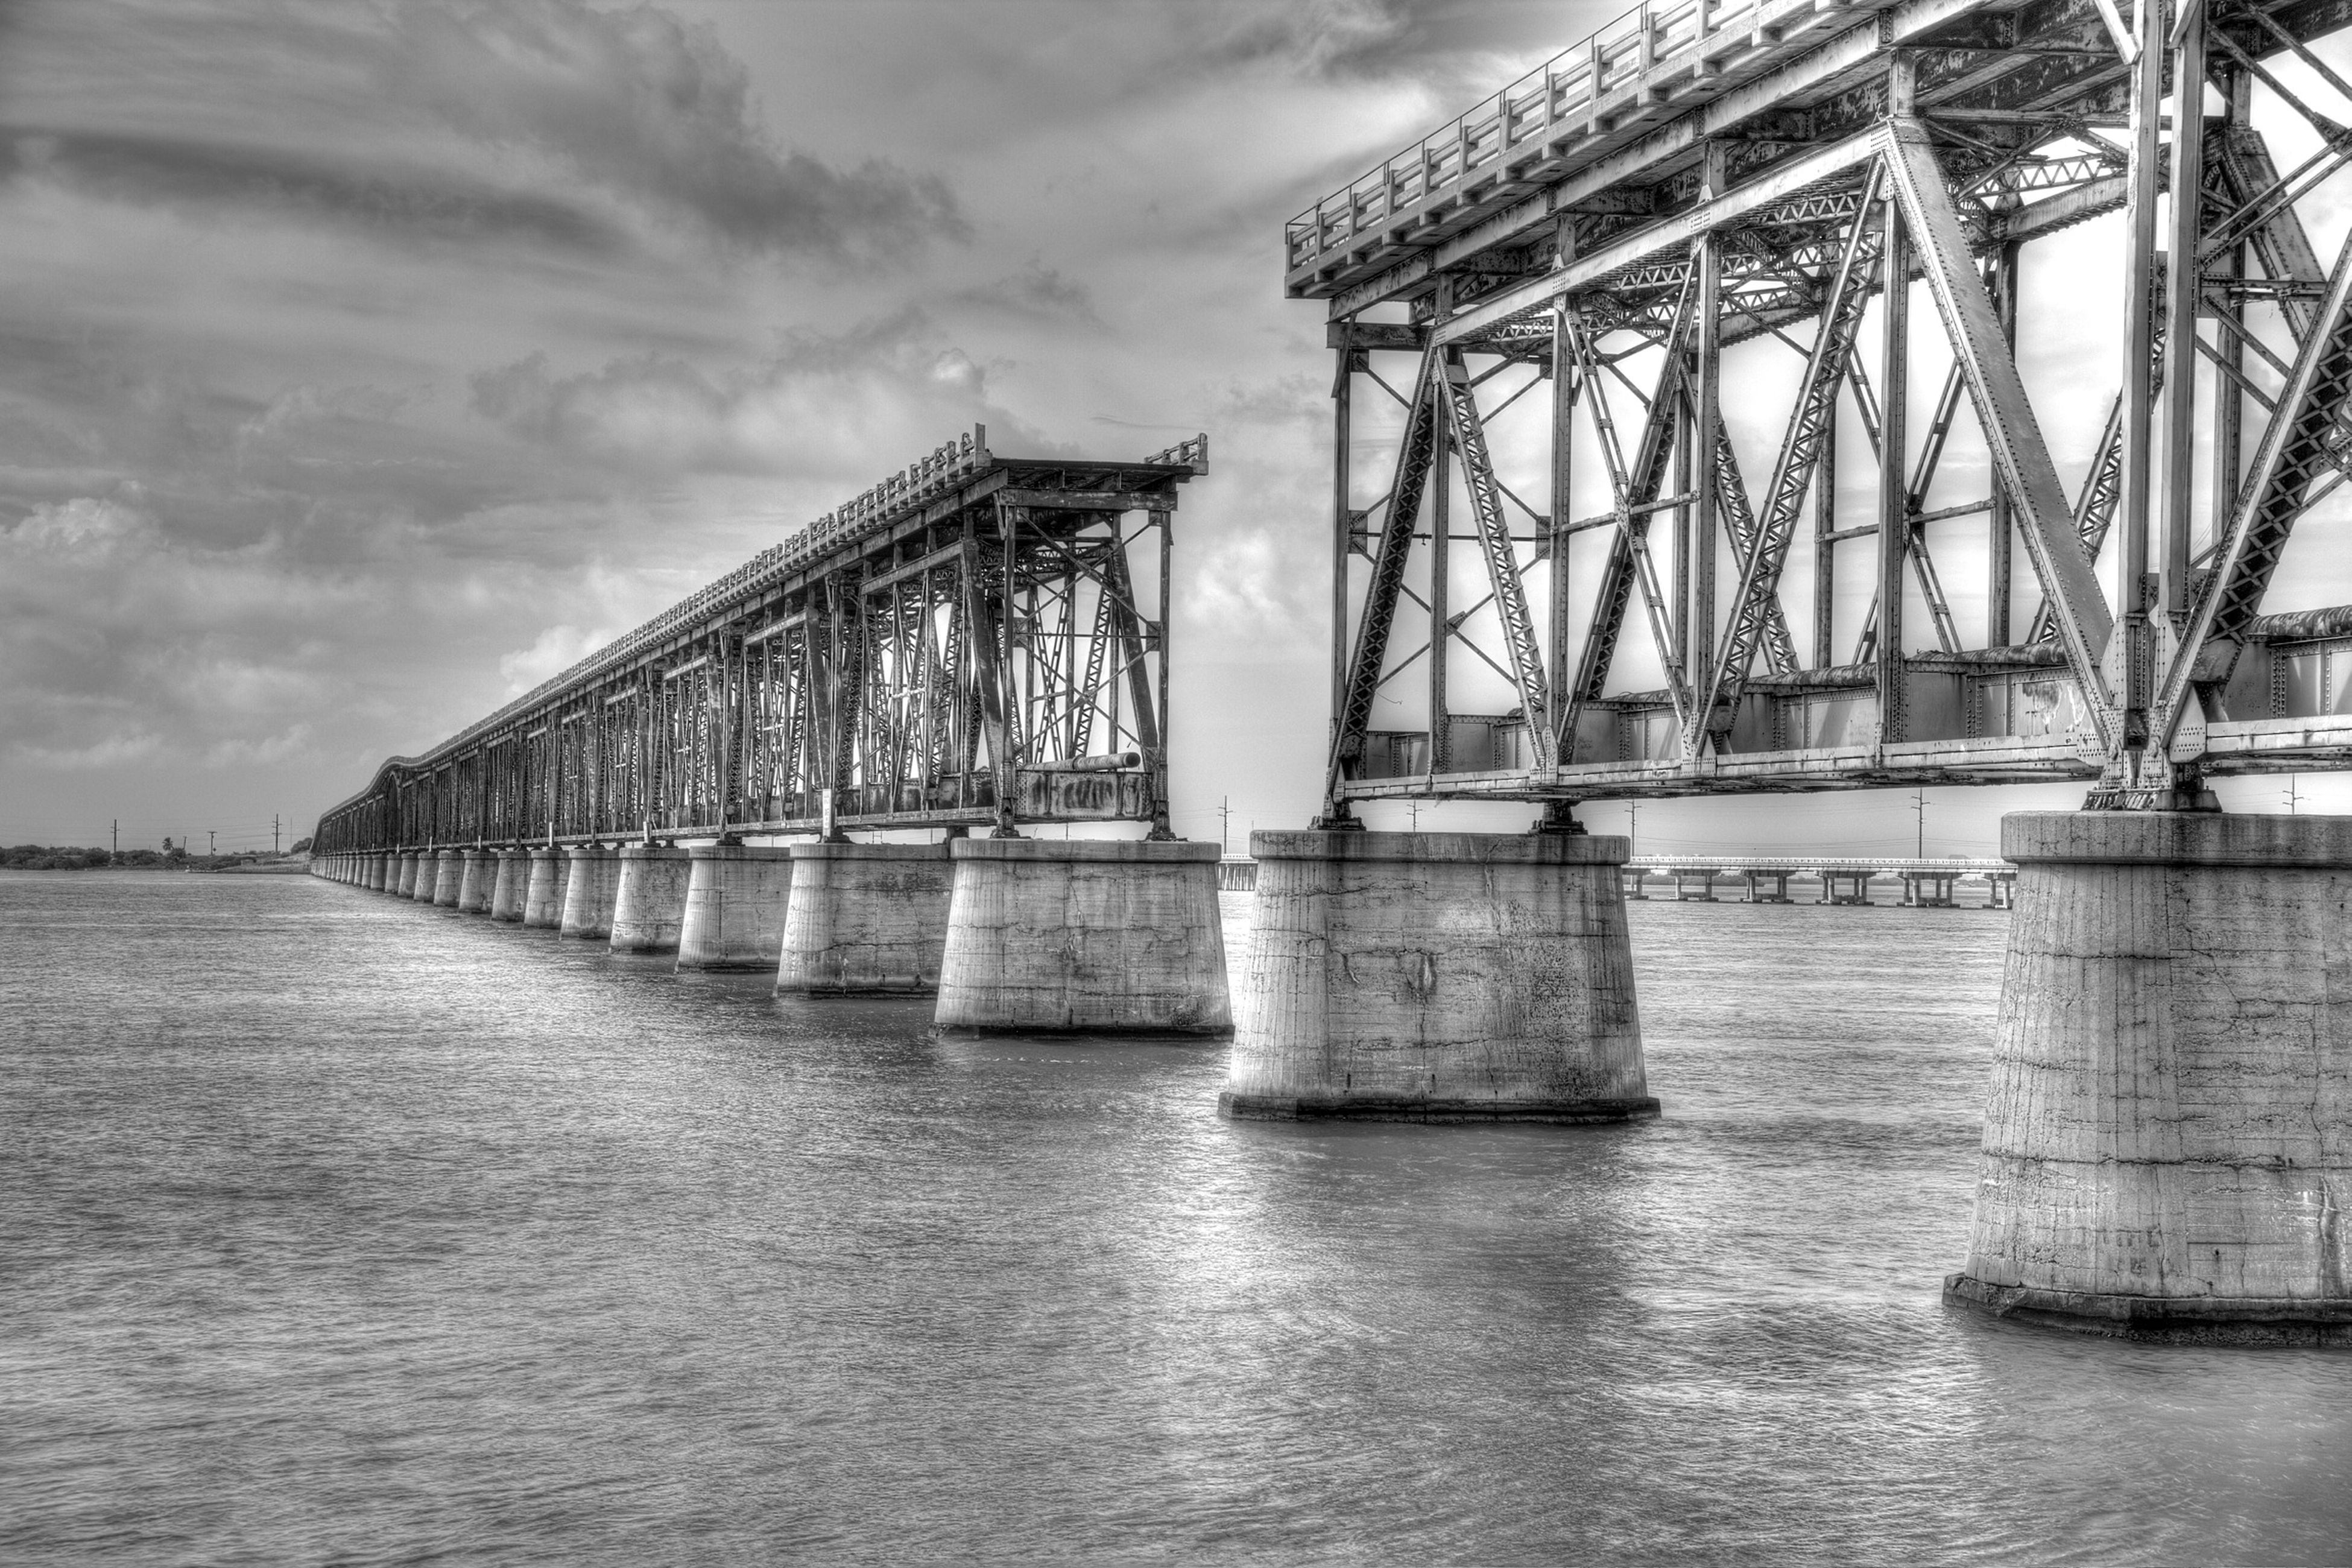 architecture, built structure, water, waterfront, sky, connection, bridge - man made structure, cloud - sky, river, bridge, transportation, reflection, engineering, rippled, low angle view, cloudy, cloud, no people, outdoors, day